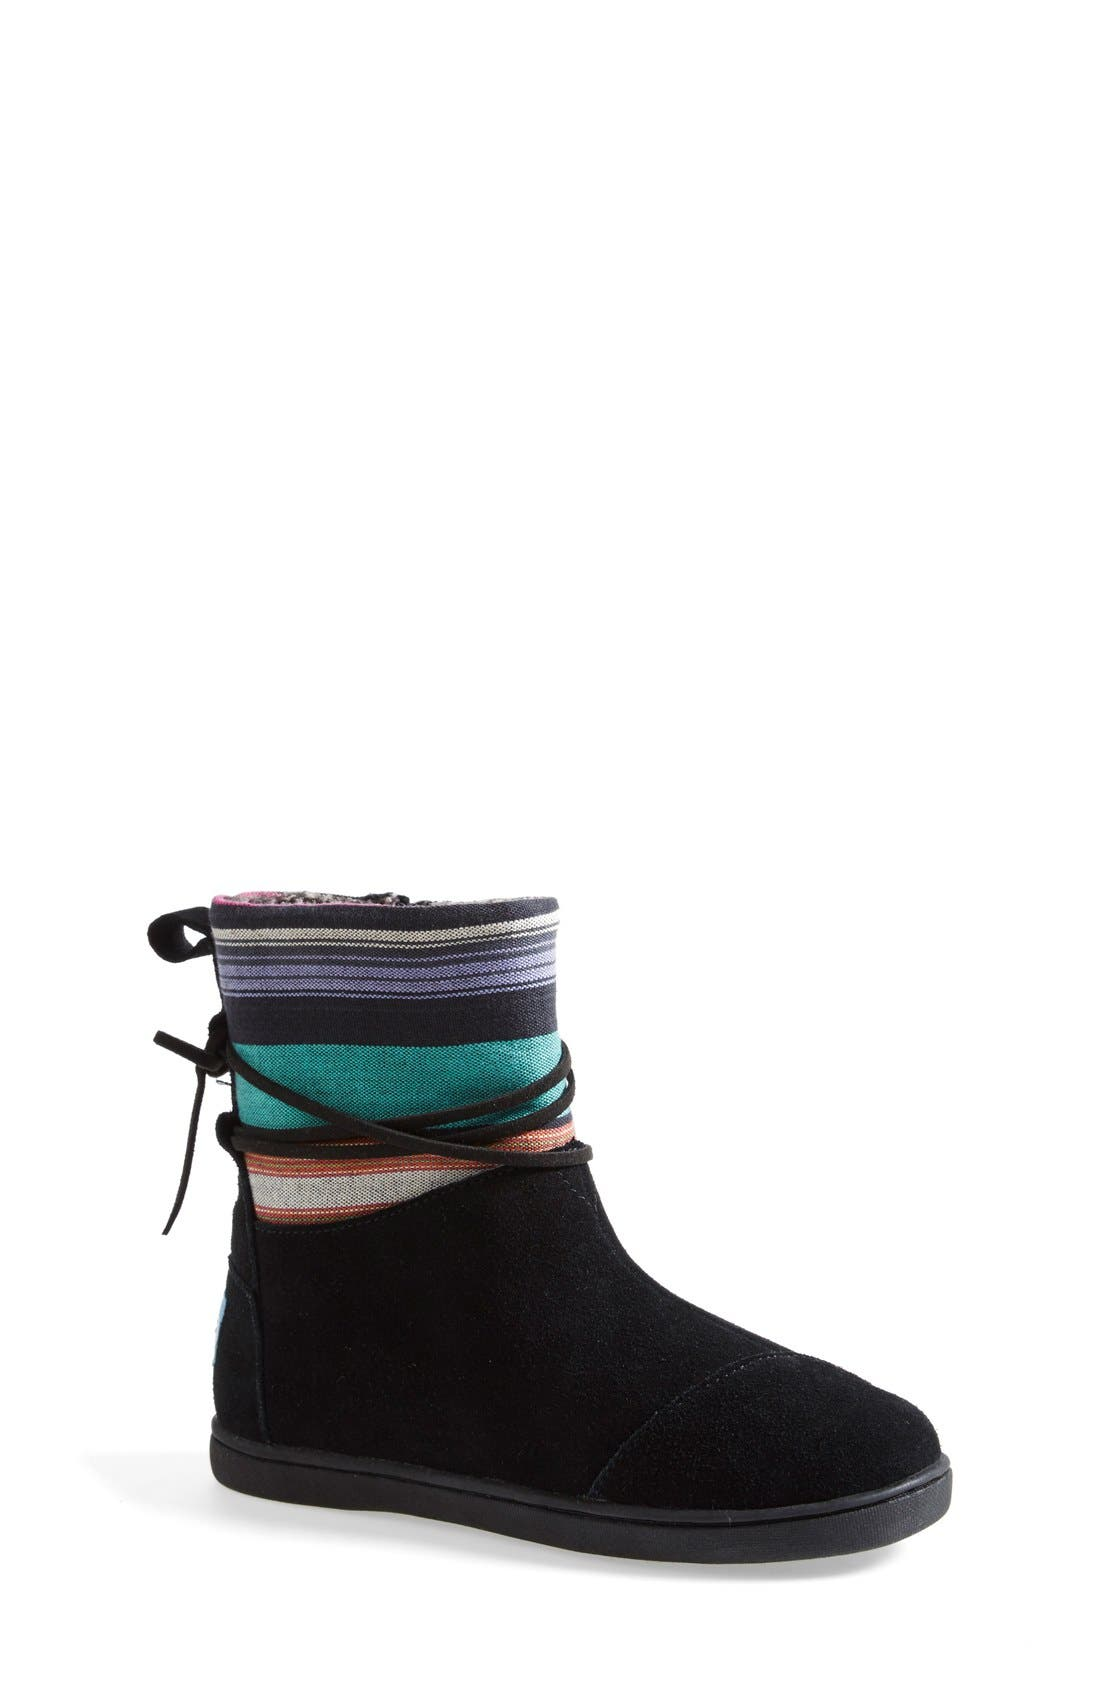 Alternate Image 1 Selected - TOMS 'Nepal - Youth' Boot (Toddler, Little Kid & Big Kid)